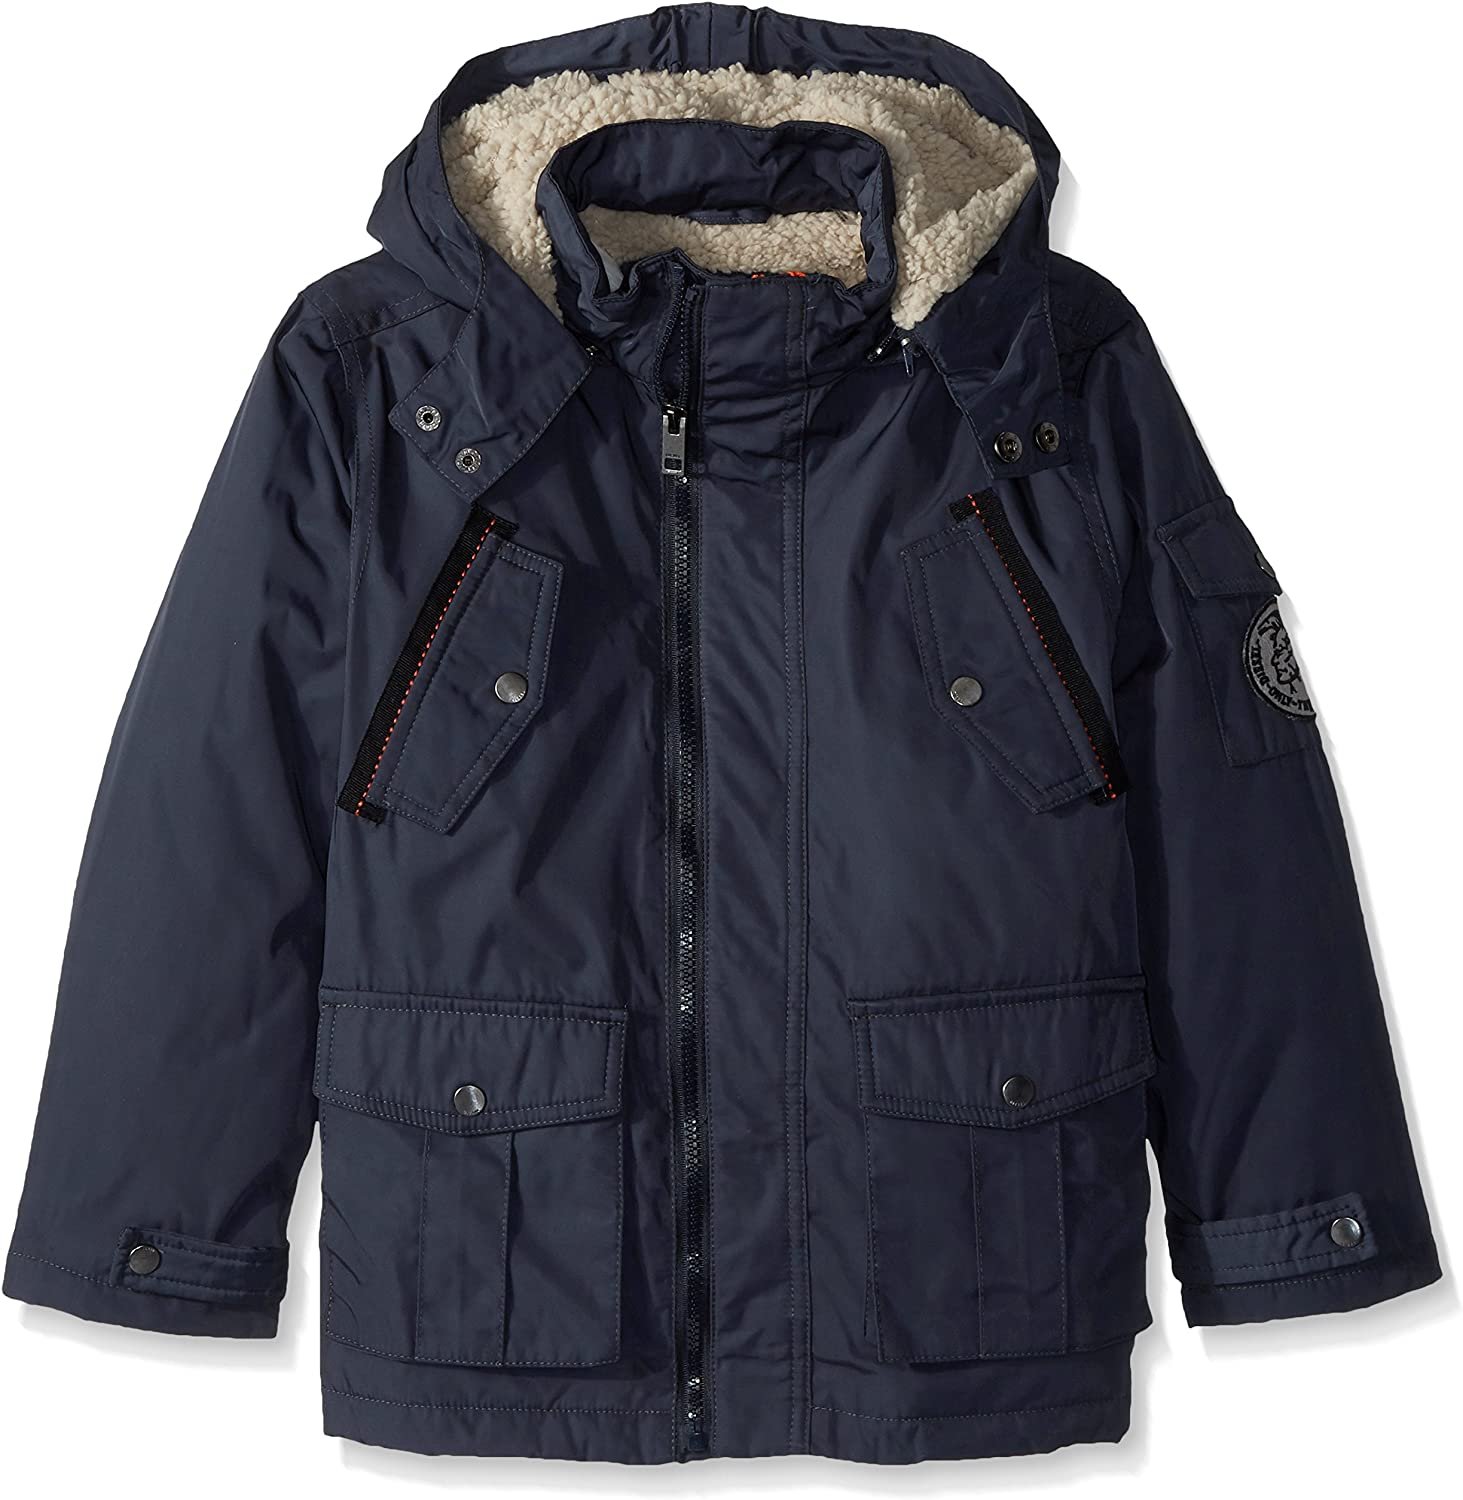 More Styles Available Boys Outerwear Jacket